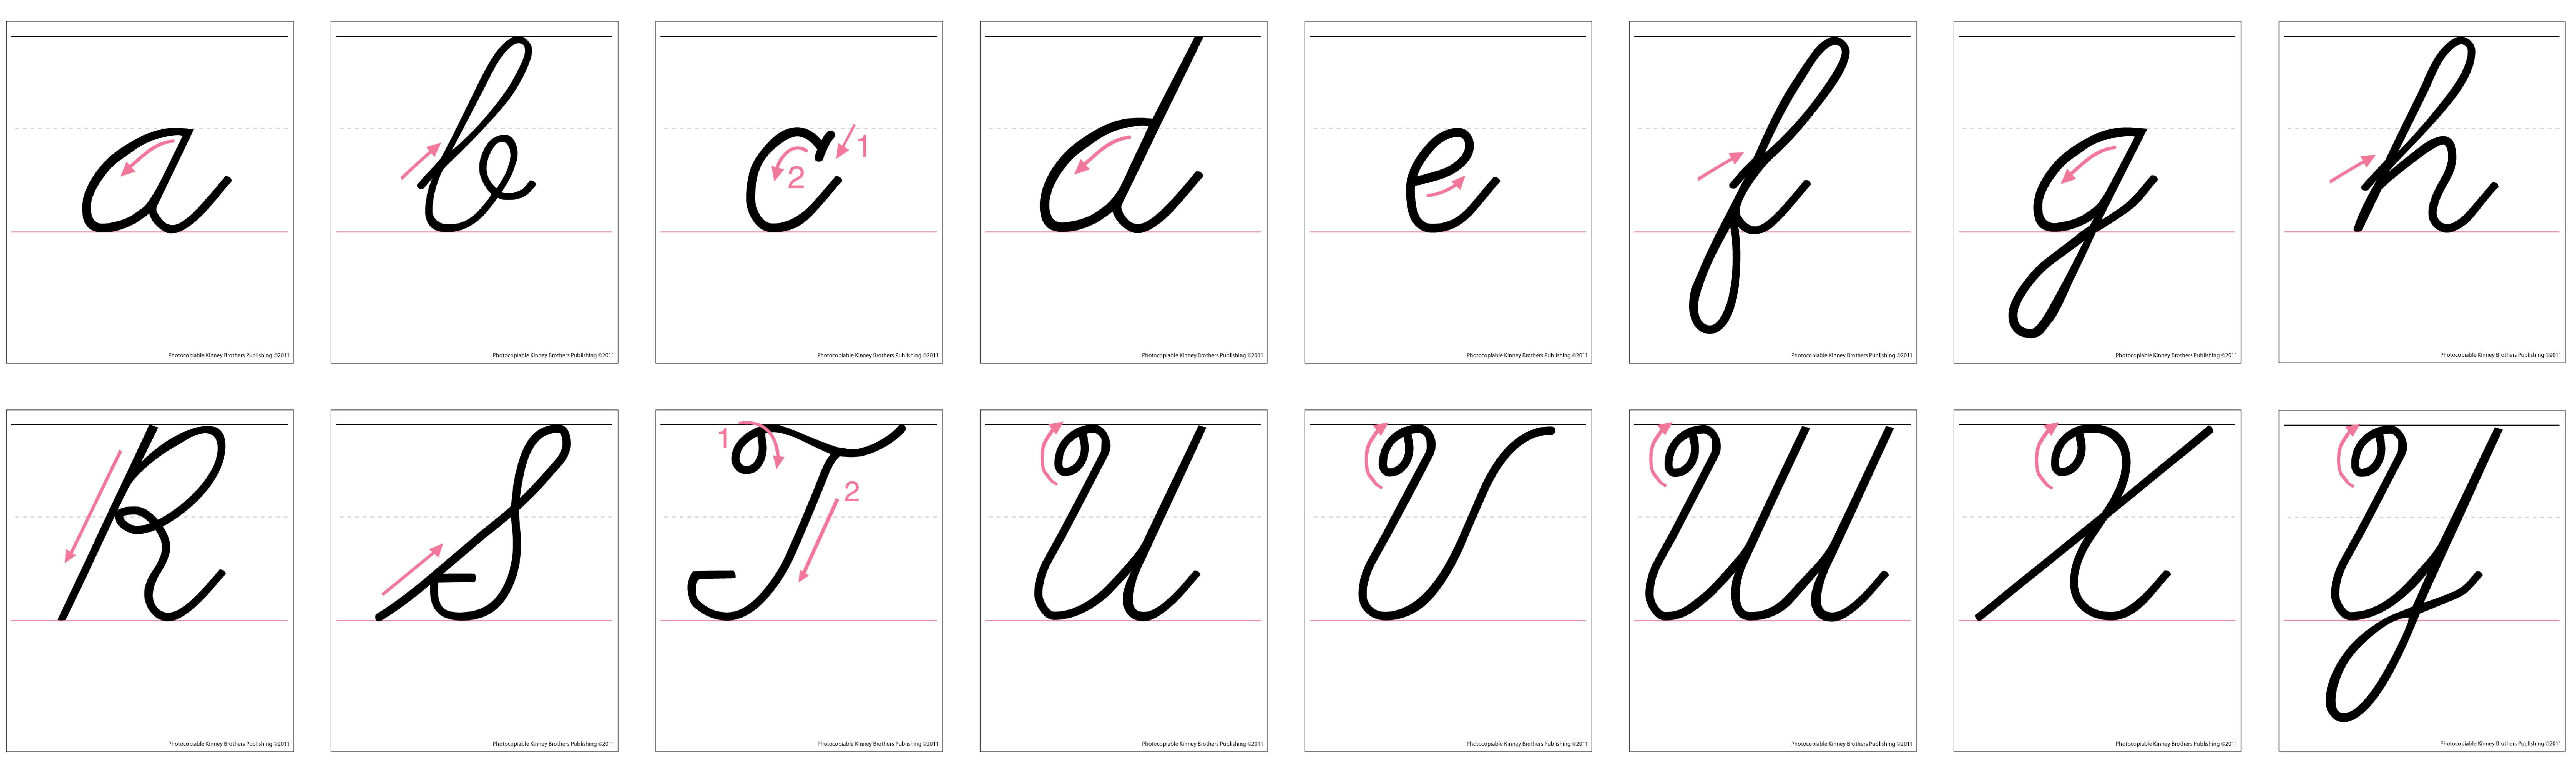 Cursive Capital Letter Q Practice Worksheet Kids Games T